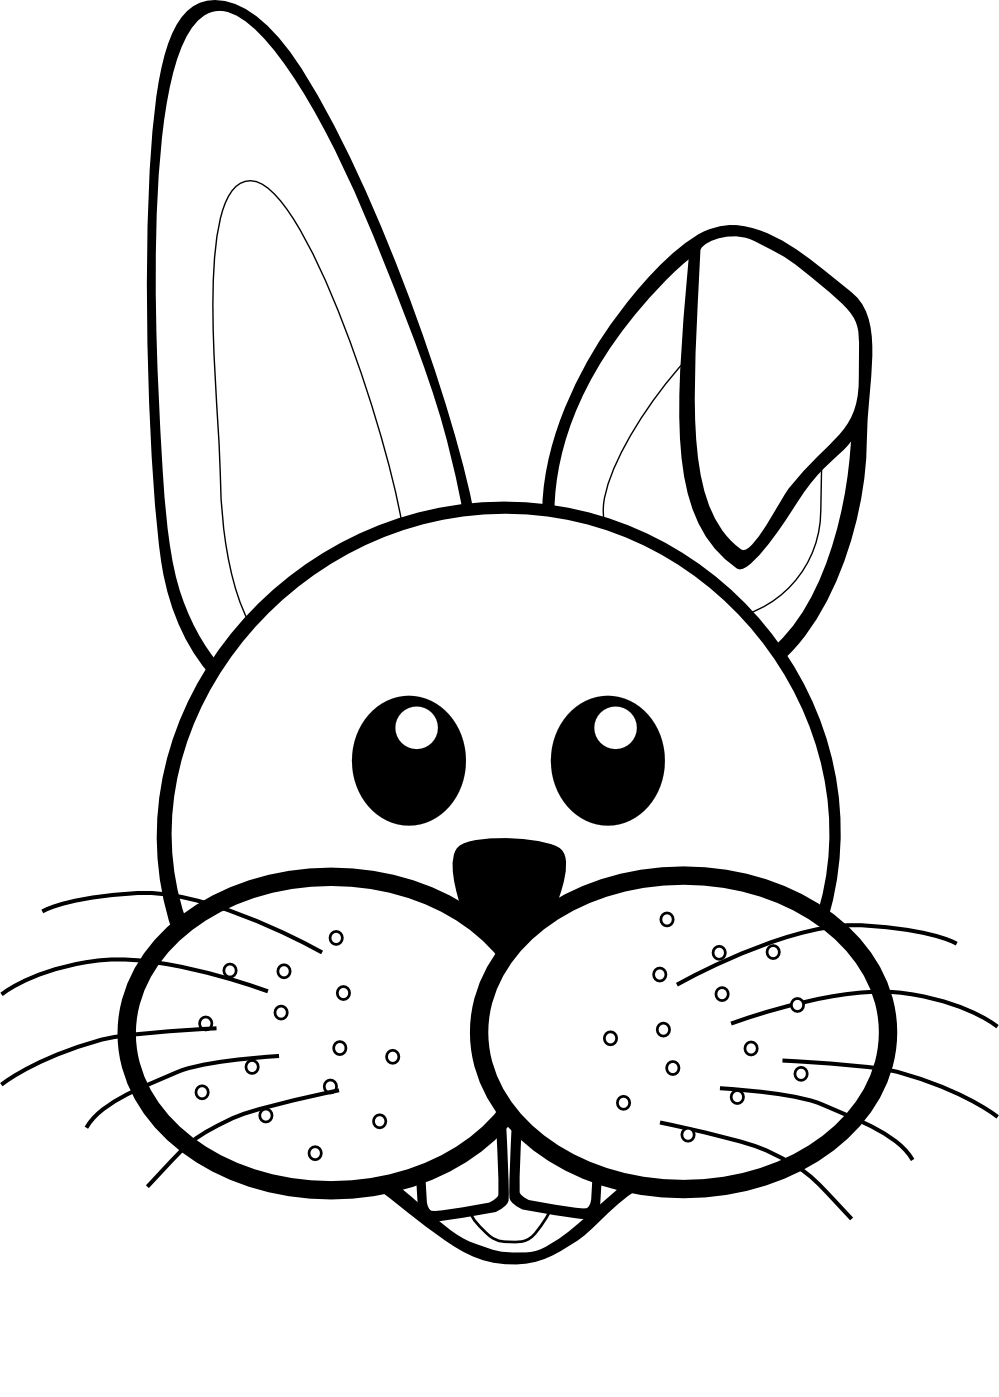 black and white rabbit drawing rabbit clipart free images clipartbarn black white and drawing rabbit